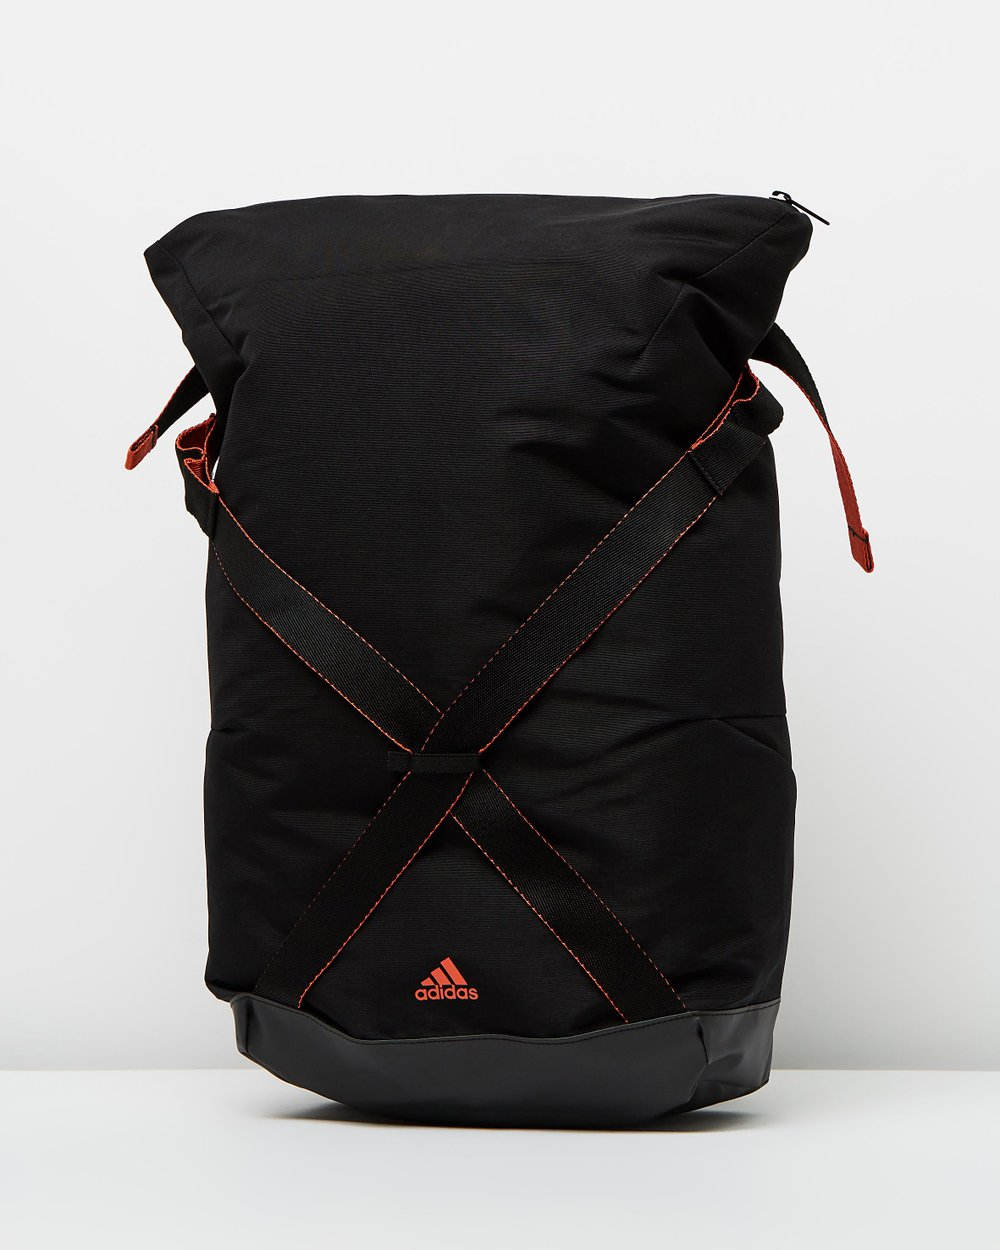 43f9ead6cdbb Z.N.E ID Backpack by adidas Performance Online